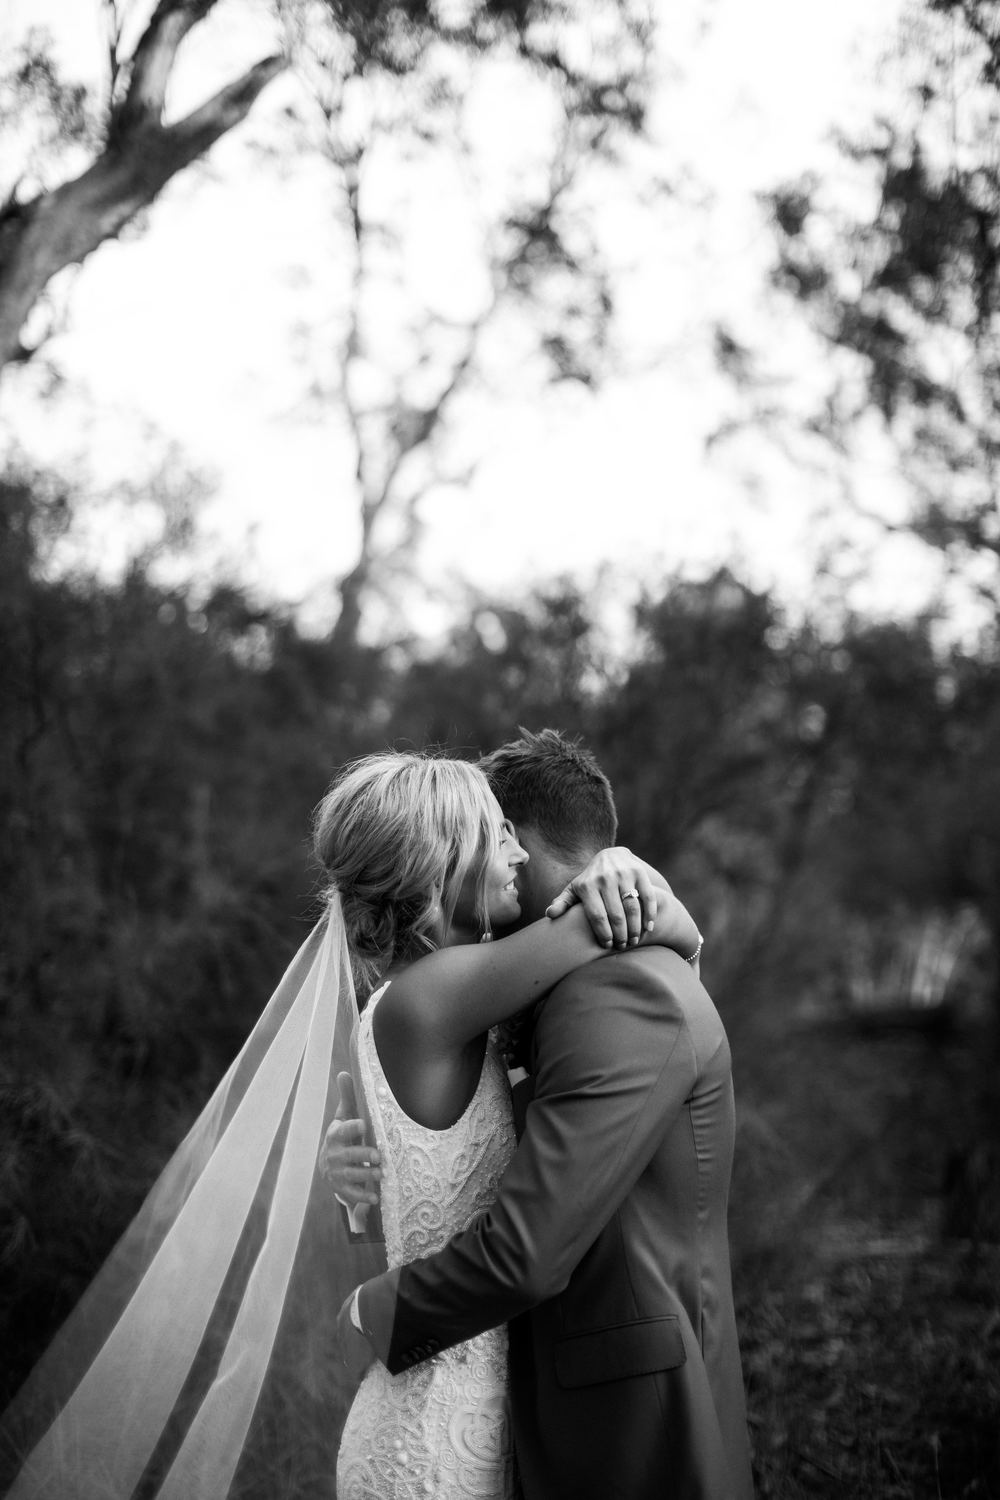 JuliaArchibald_WeddingPhotography_Melbourne_Australia_31.jpg